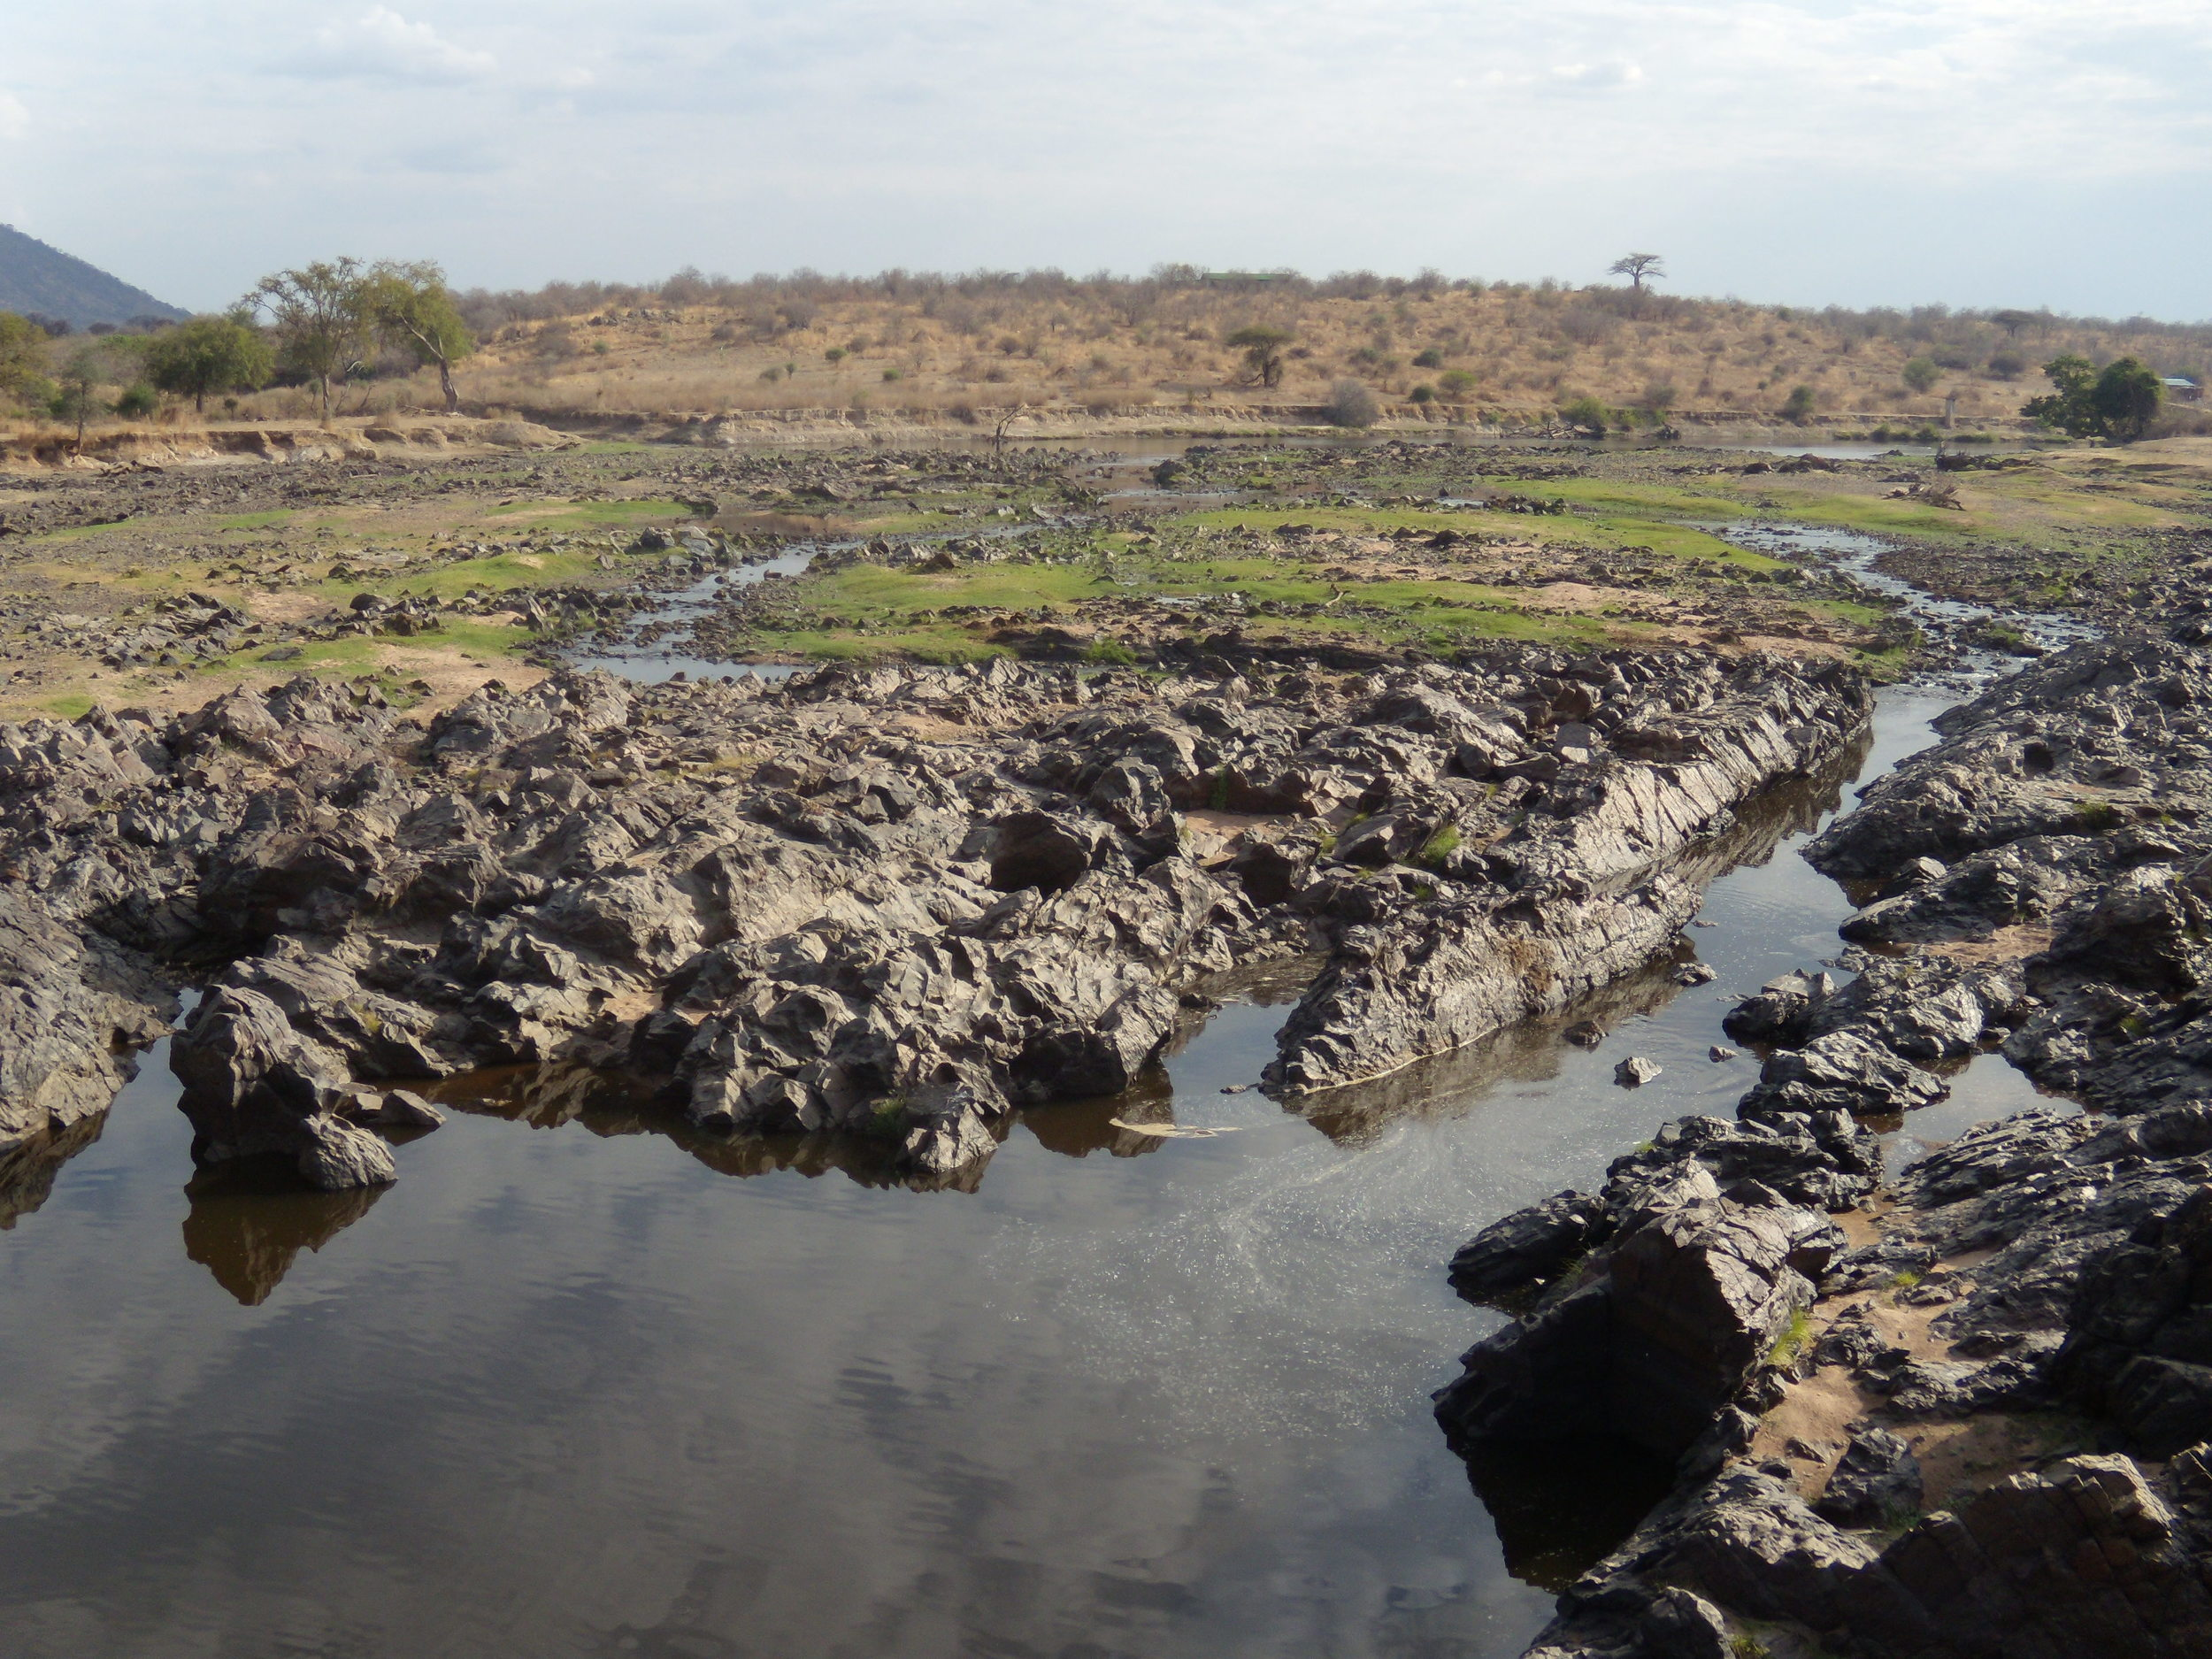 Ruaha River drying